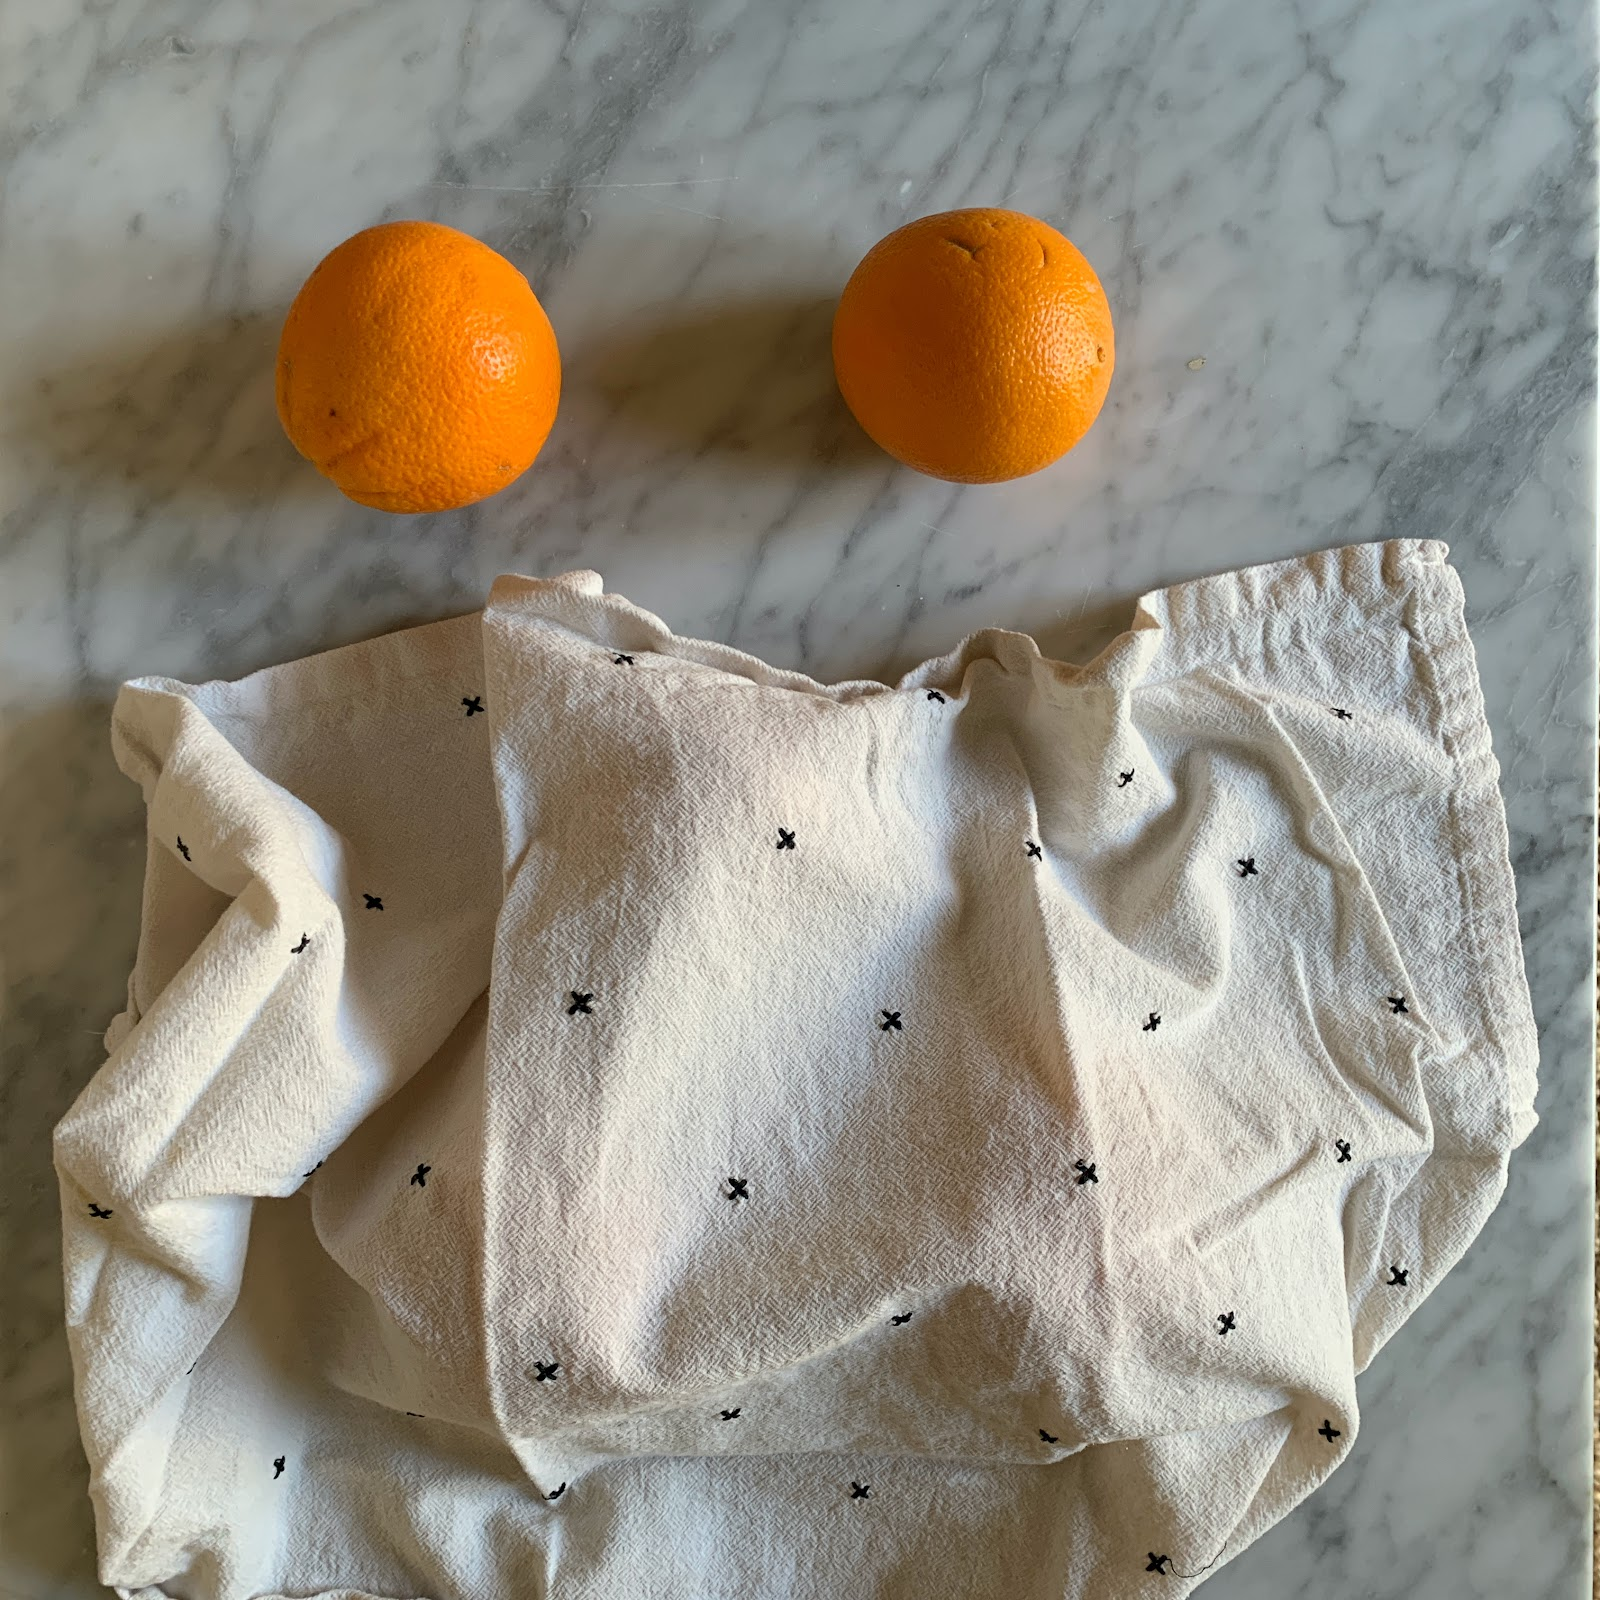 Now only 2 oranges are visible. The rest are hidden under a towel.